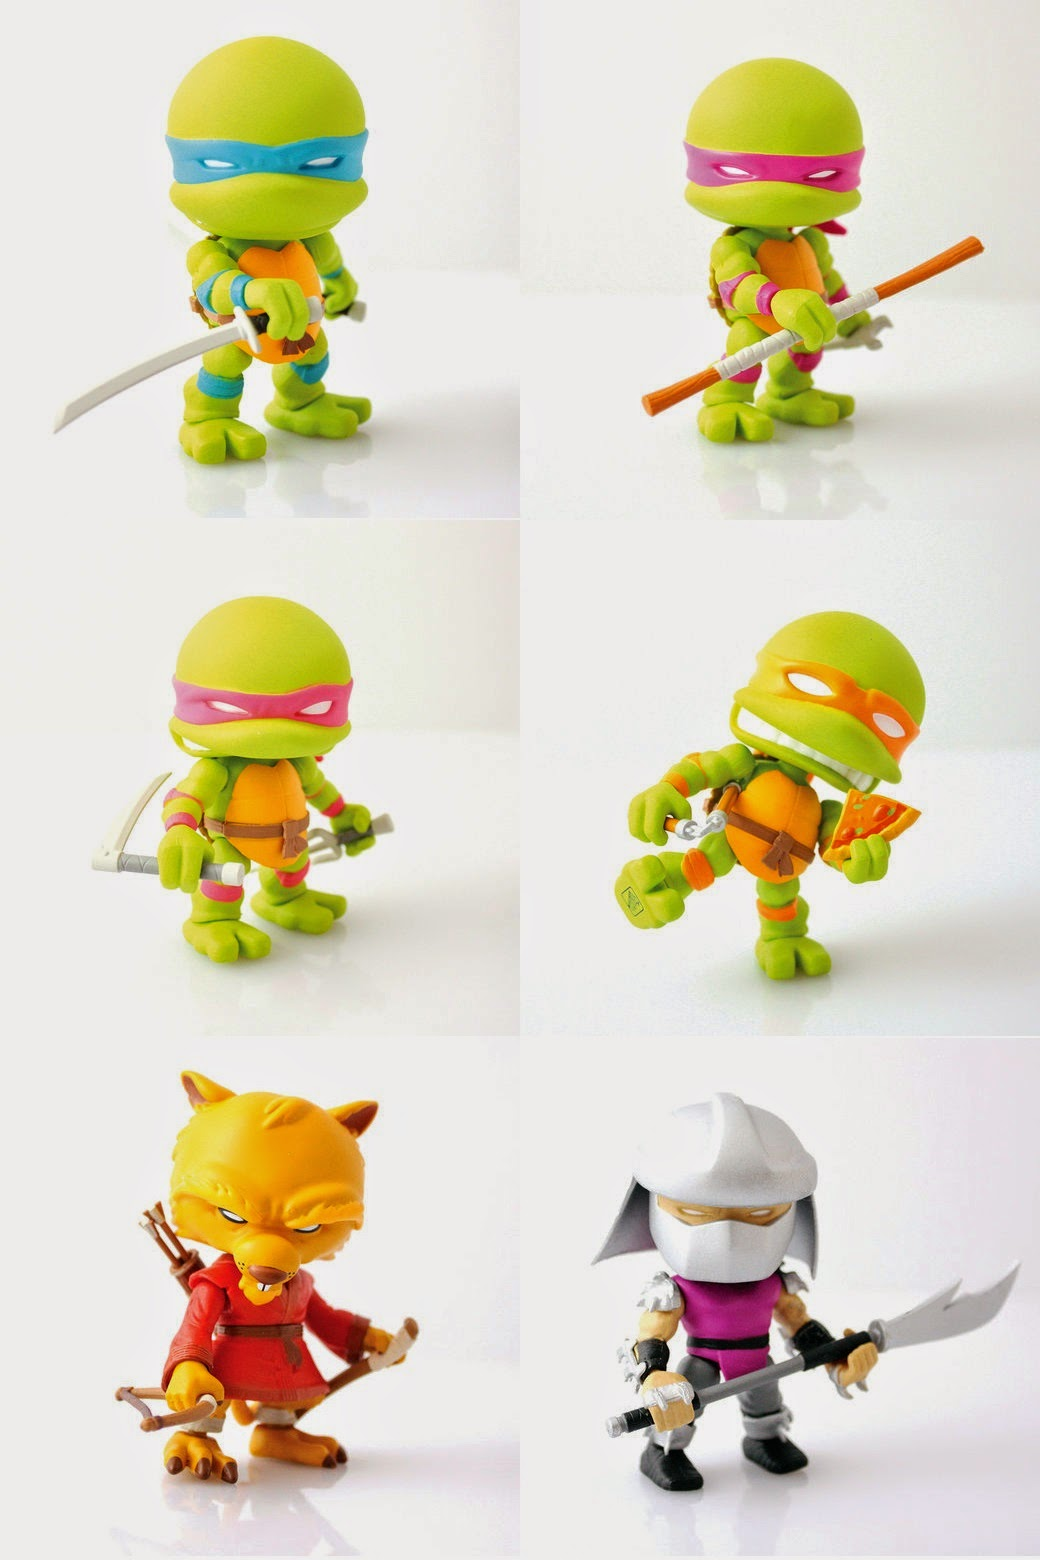 Gamestop Exclusive Teenage Mutant Ninja Turtles Mini Figures by The Loyal Subjects -  Leonardo, Donatello, Raphael, Michelangelo, Splinter & Shredder.jpg